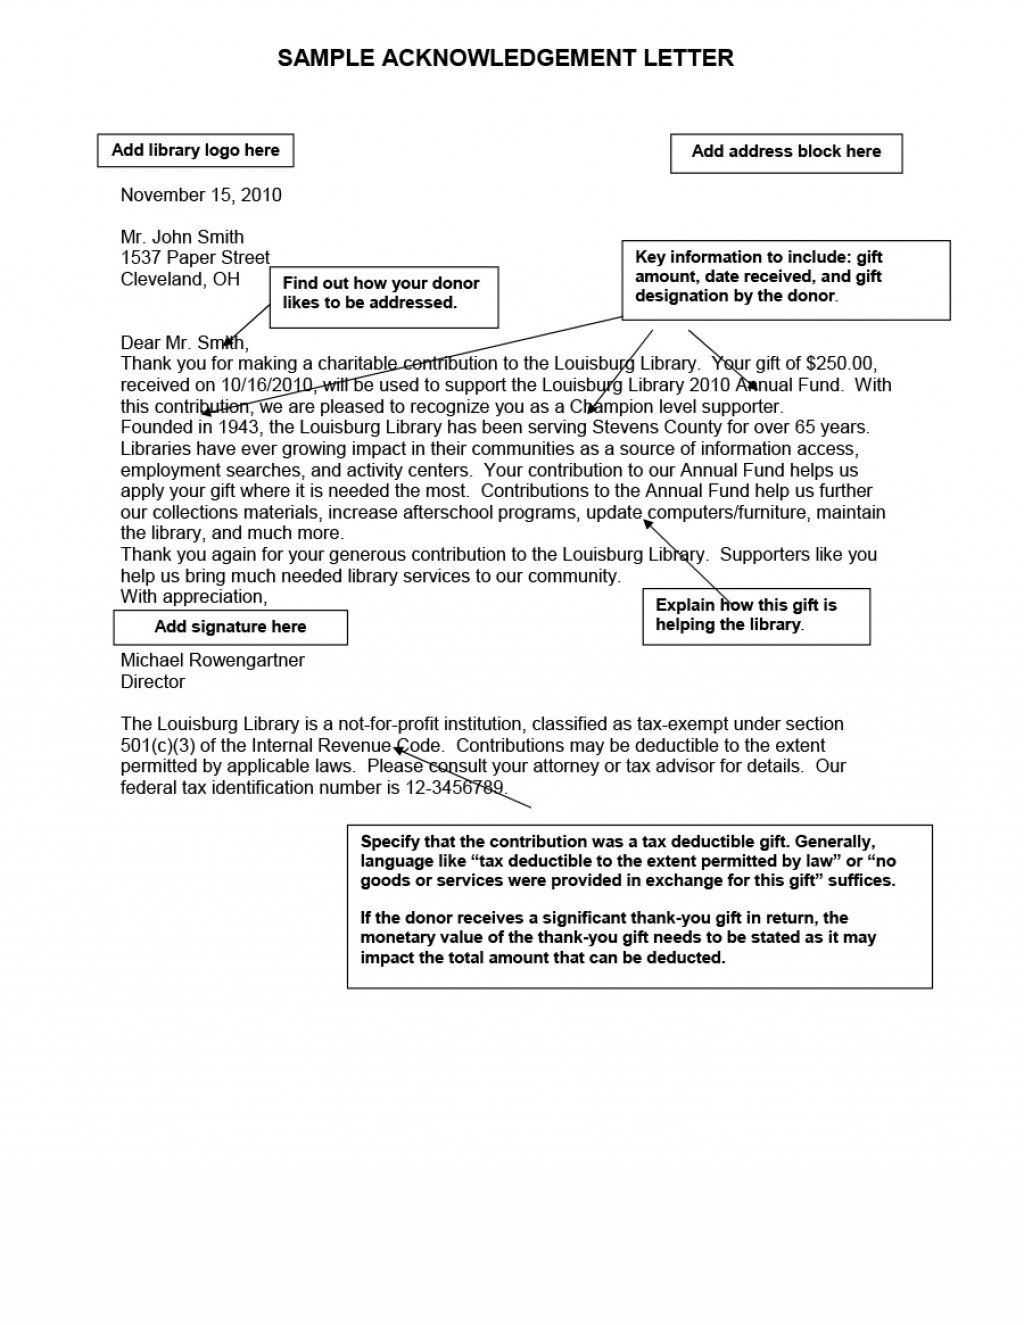 004 Research Paper Acknowledgement Sample Example Of In Fearsome Pdf Dedication And Group Large